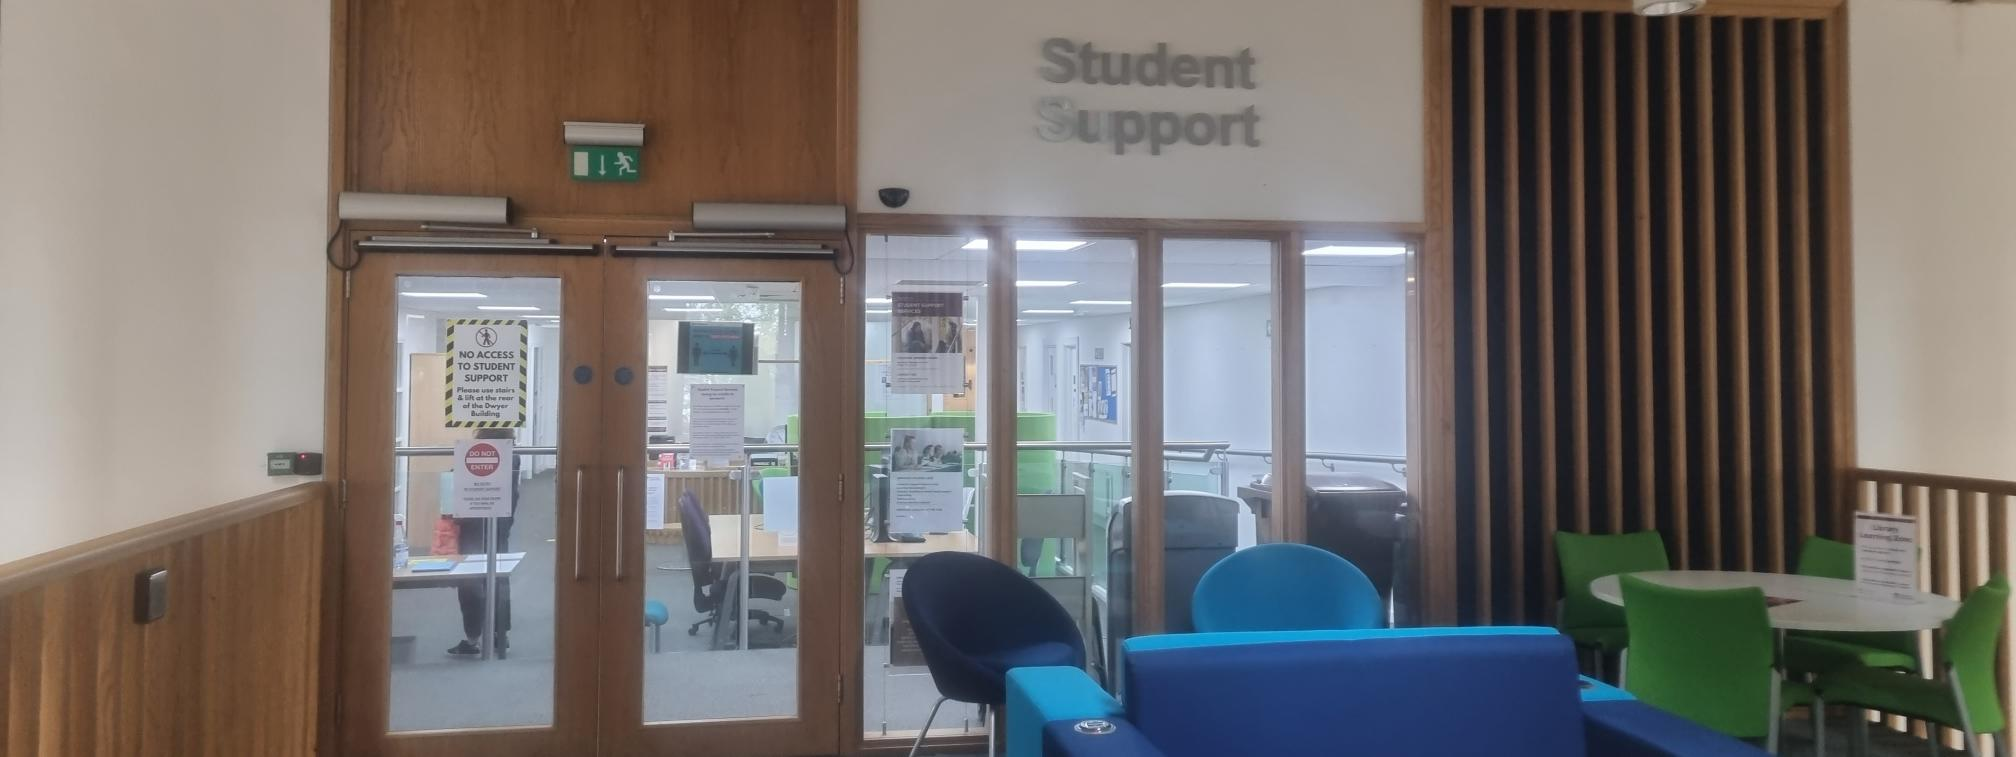 Outside student support